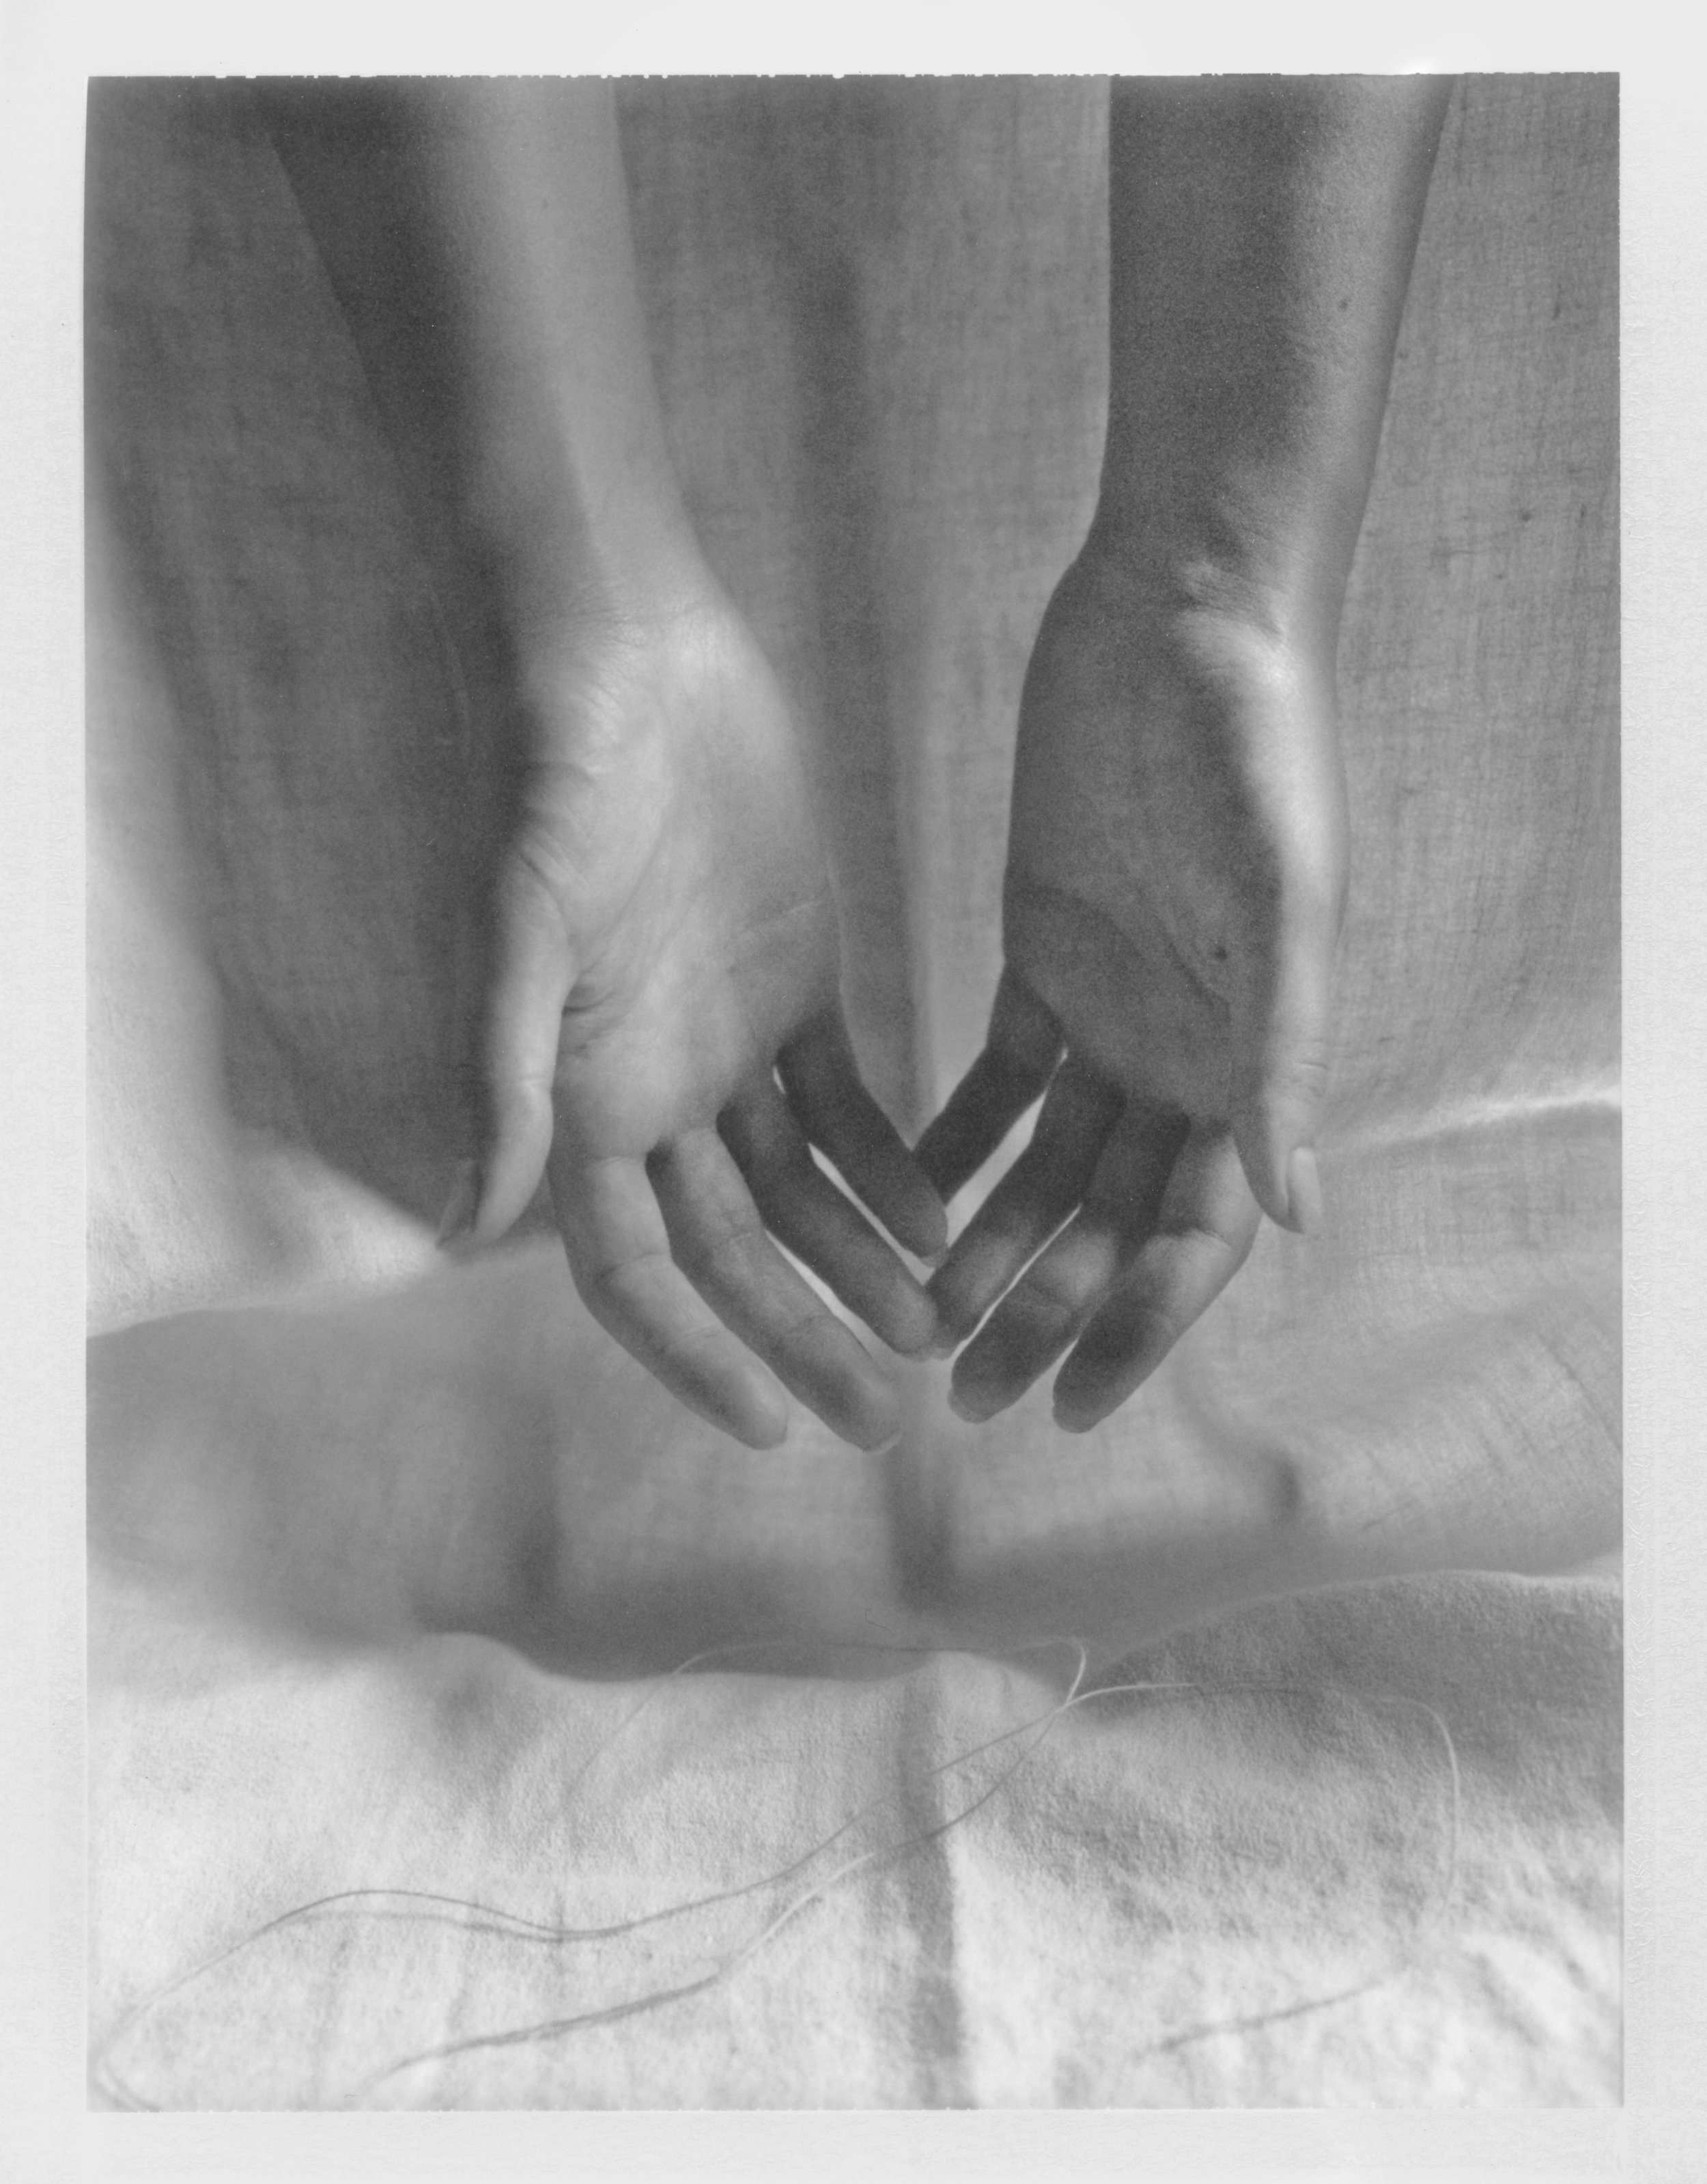 """Fell in Her Hands. 2016. Archival Pigment Print. 6"""" x 4"""""""